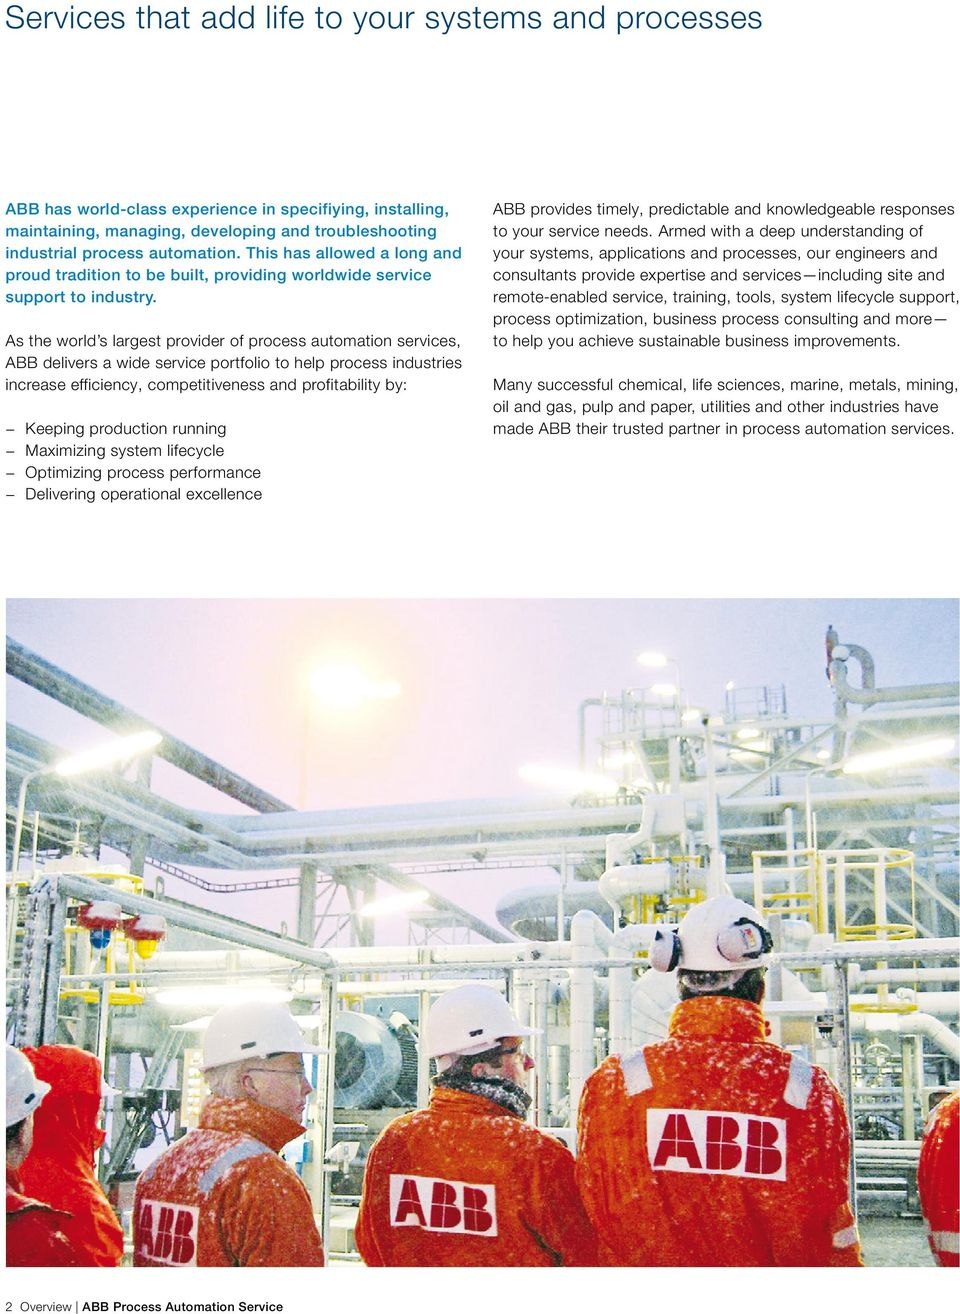 As the world s largest provider of process automation services, ABB delivers a wide service portfolio to help process industries increase efficiency, competitiveness and profitability by: Keeping